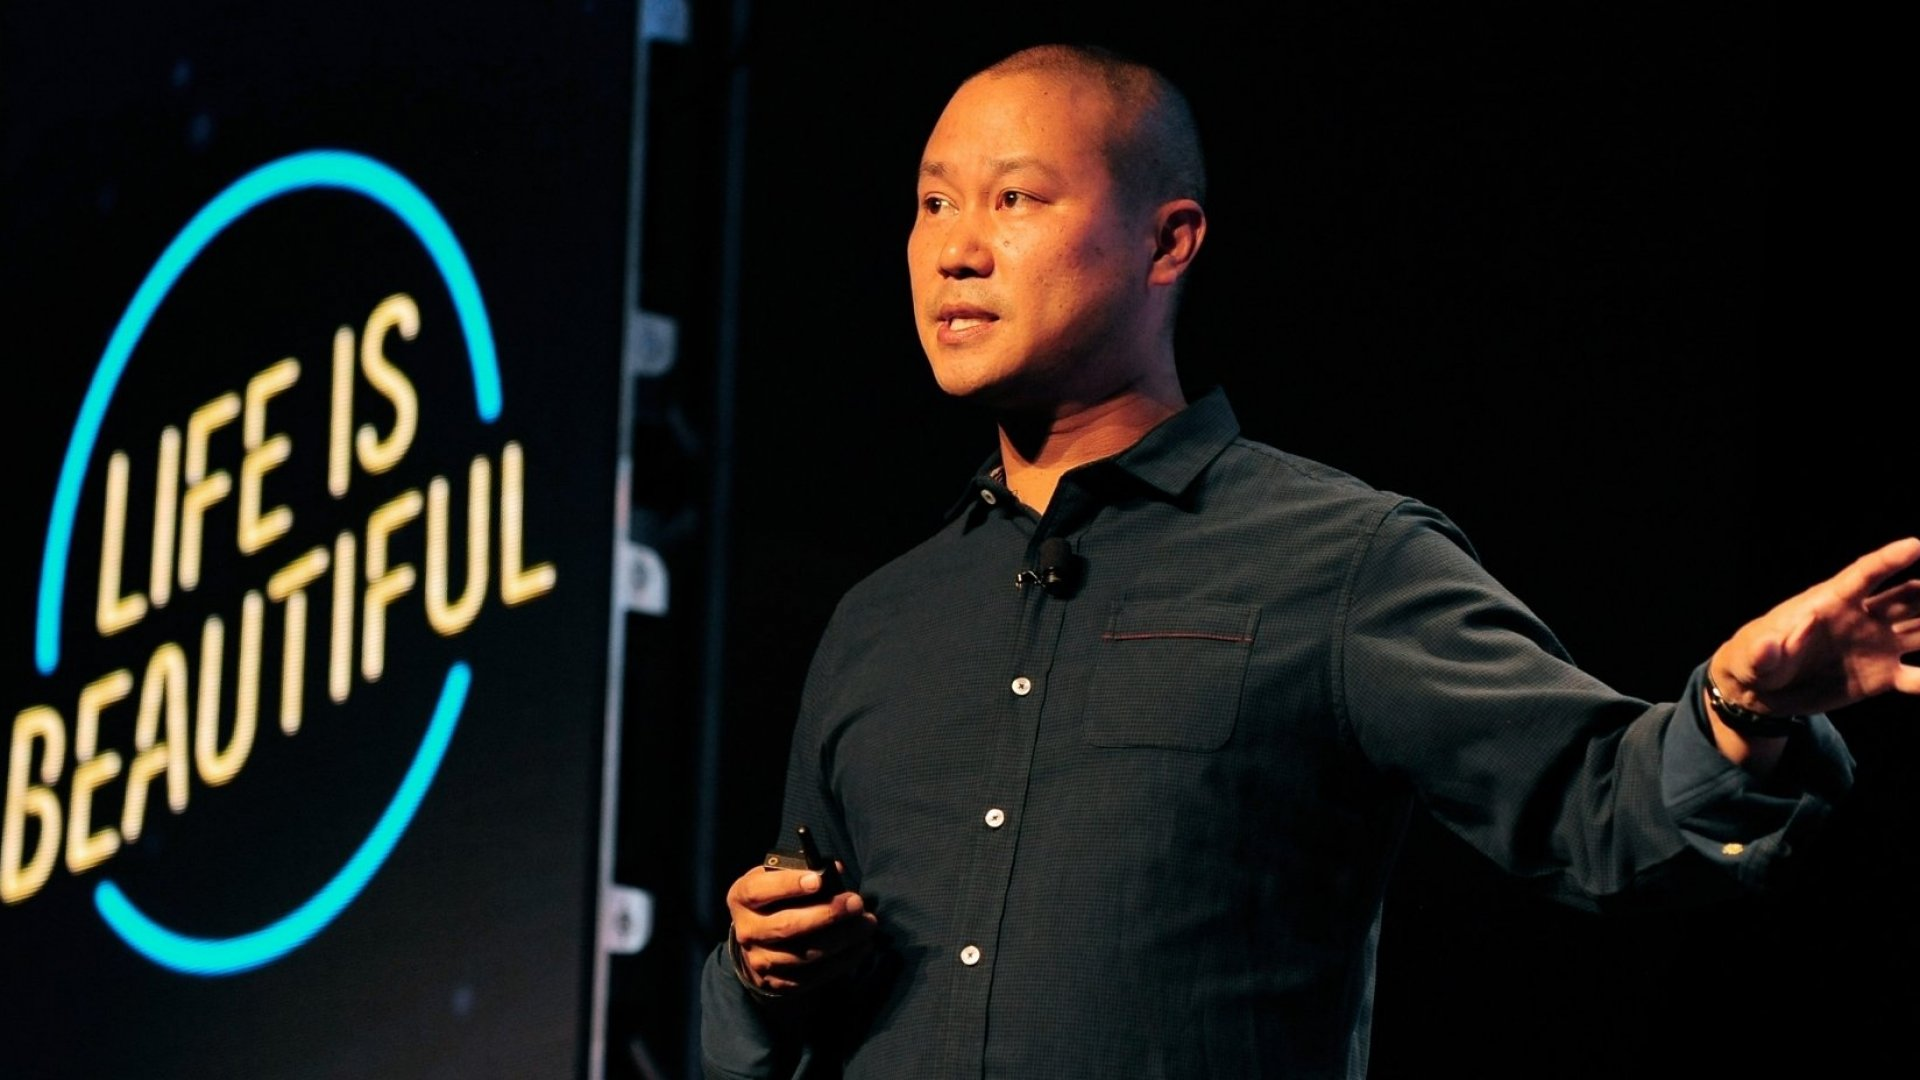 7 New Lessons From Zappos's Radical Management Experiment